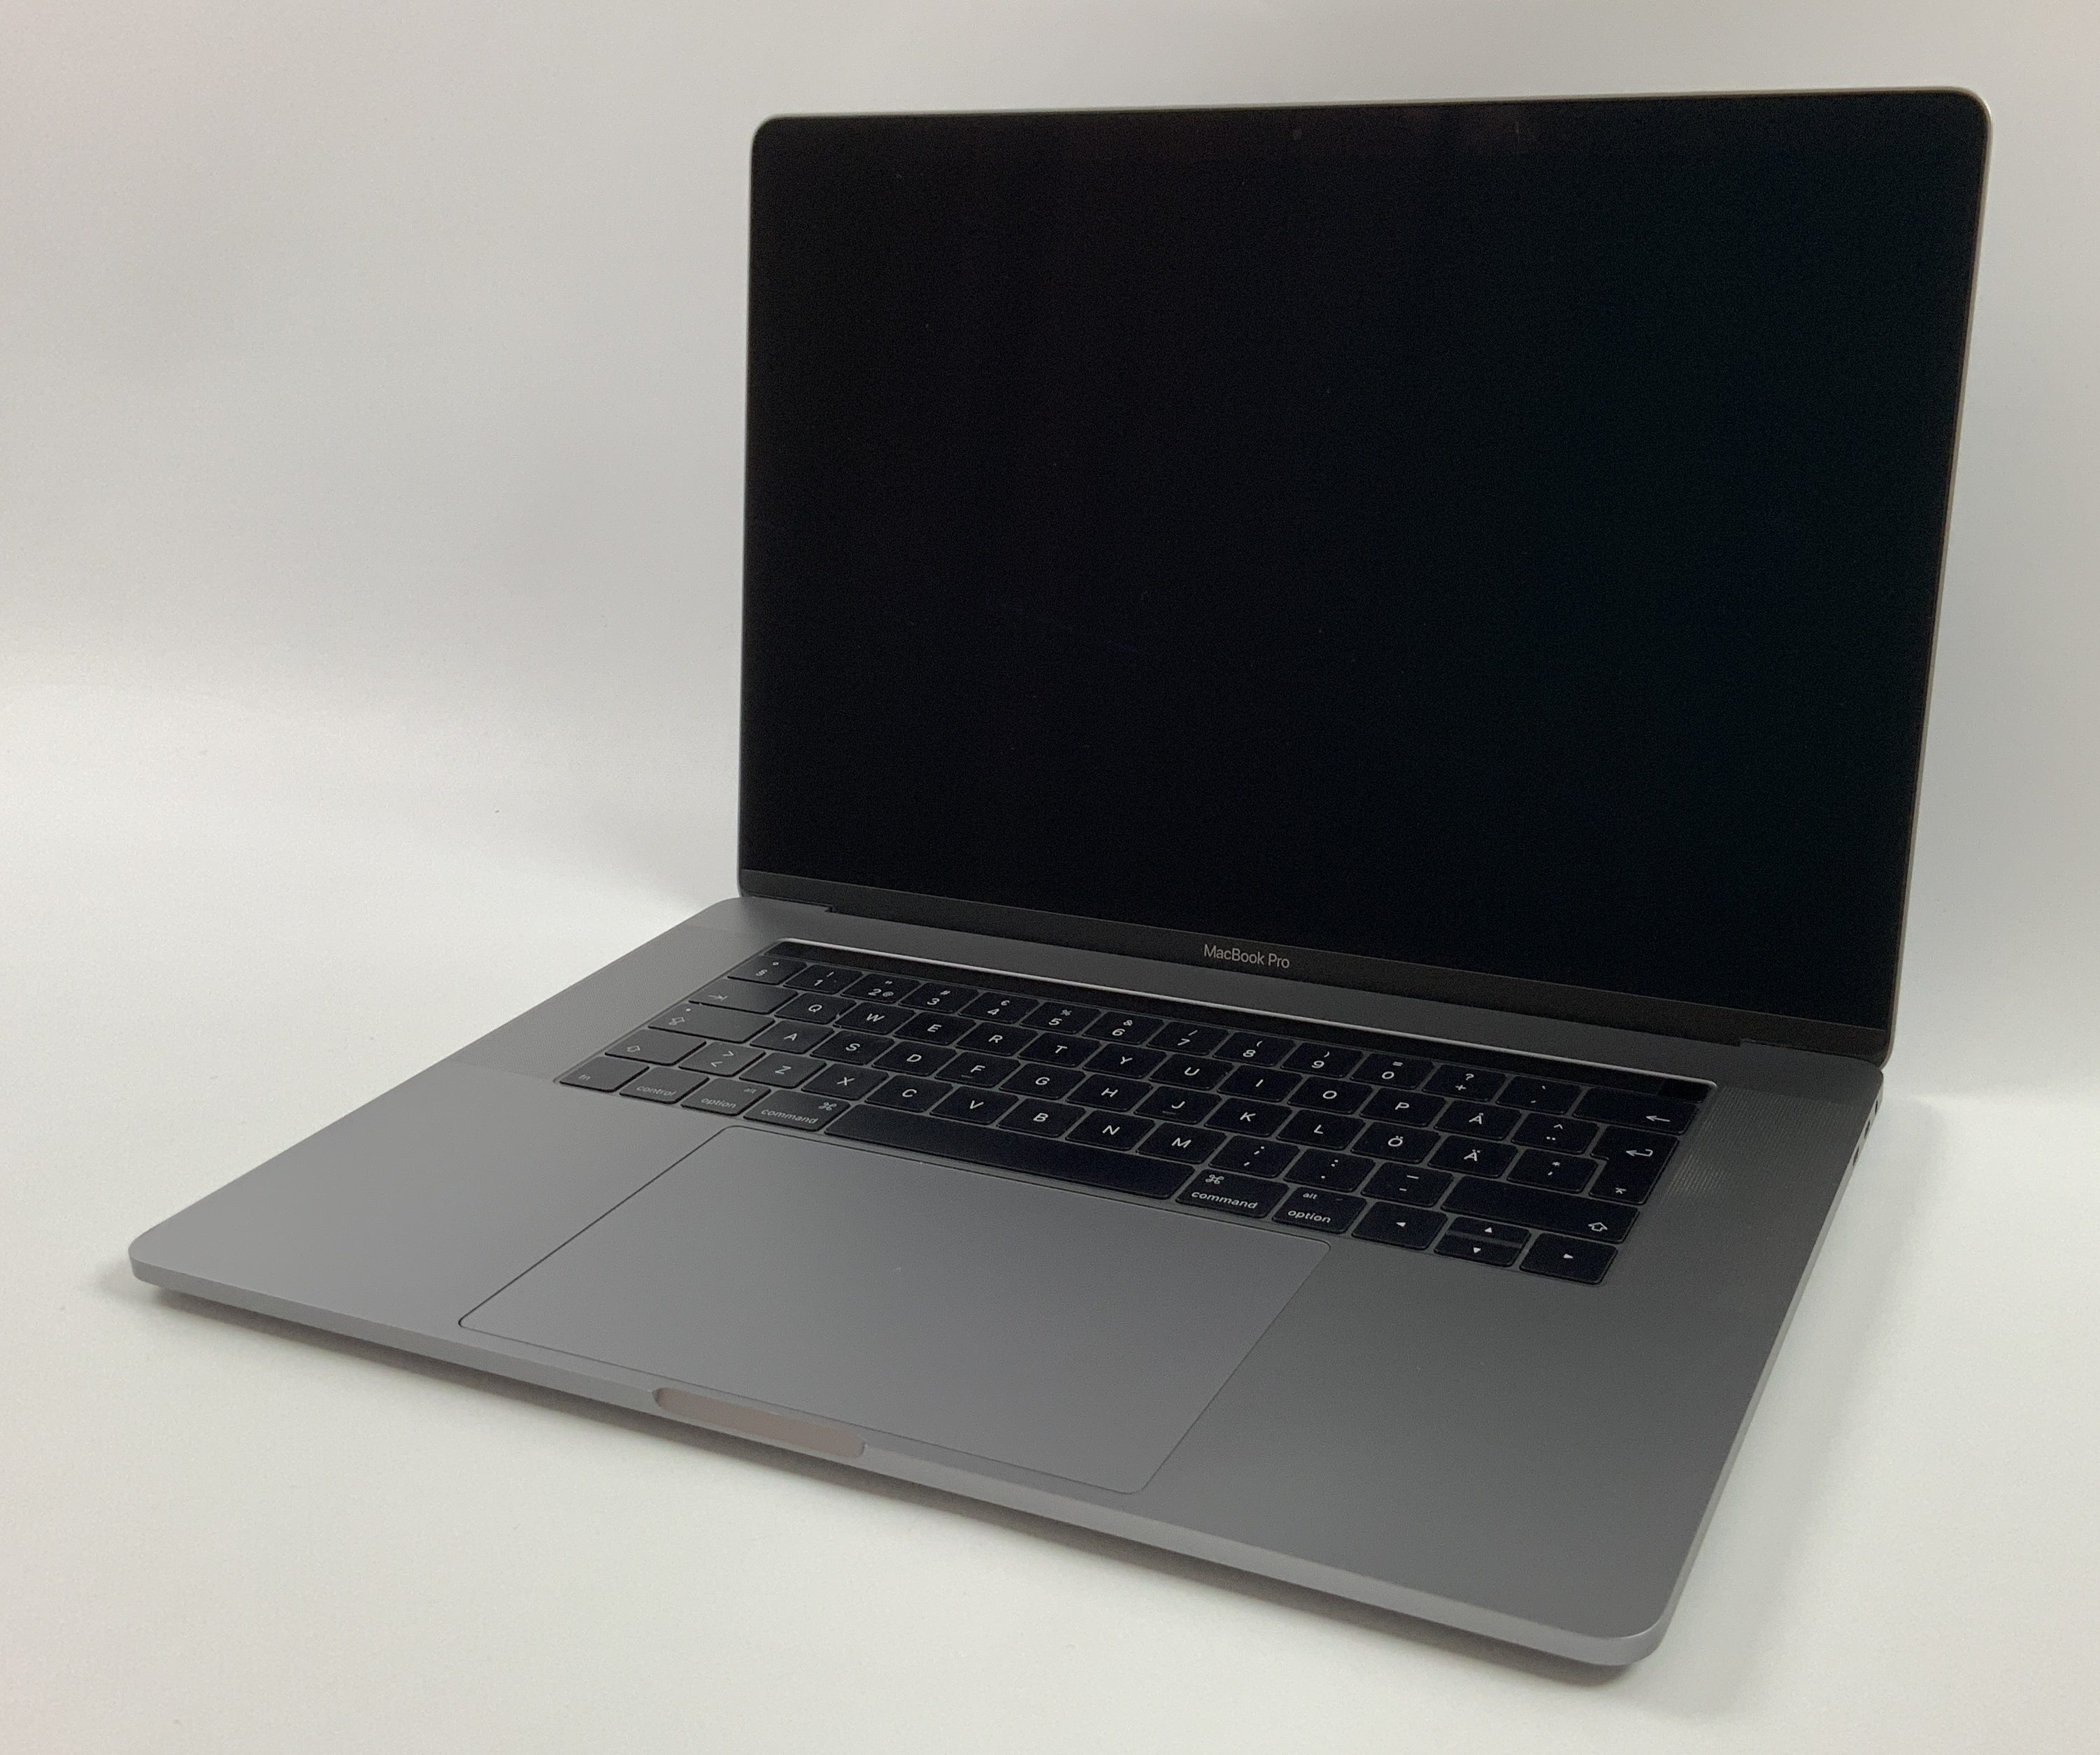 "MacBook Pro 15"" Touch Bar Late 2016 (Intel Quad-Core i7 2.6 GHz 16 GB RAM 256 GB SSD), Space Gray, Intel Quad-Core i7 2.6 GHz, 16 GB RAM, 256 GB SSD, Afbeelding 1"